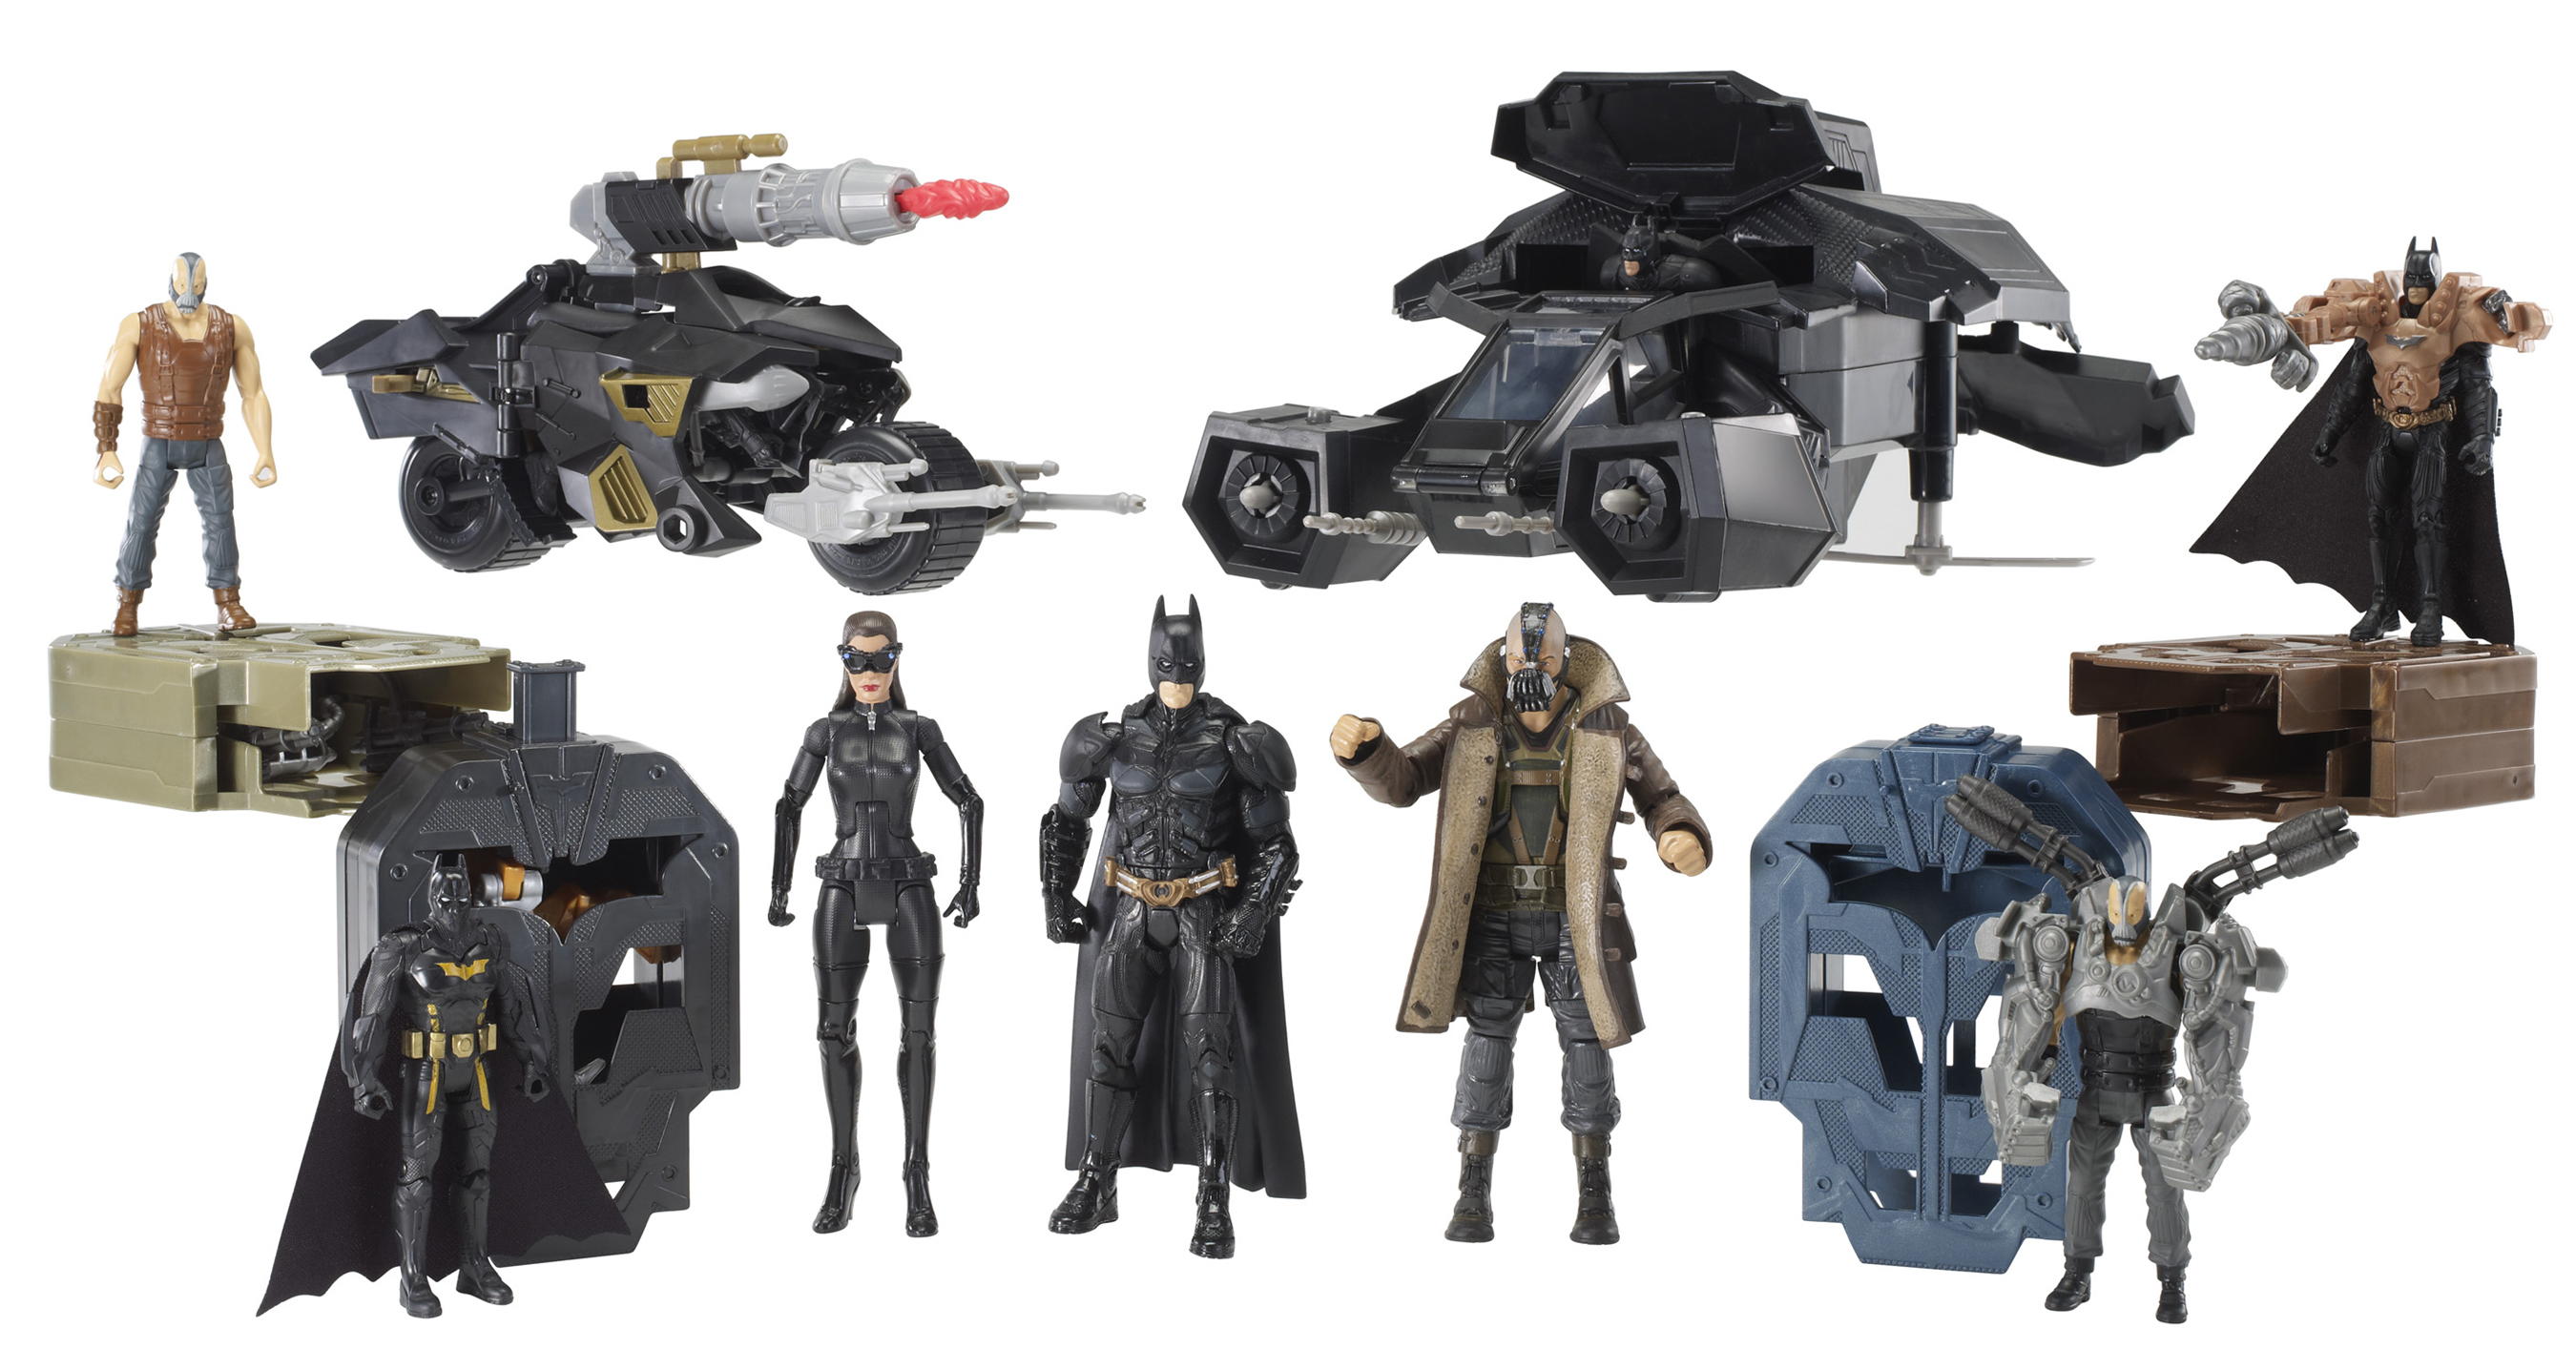 Mattel The Dark Knight Rises Figures